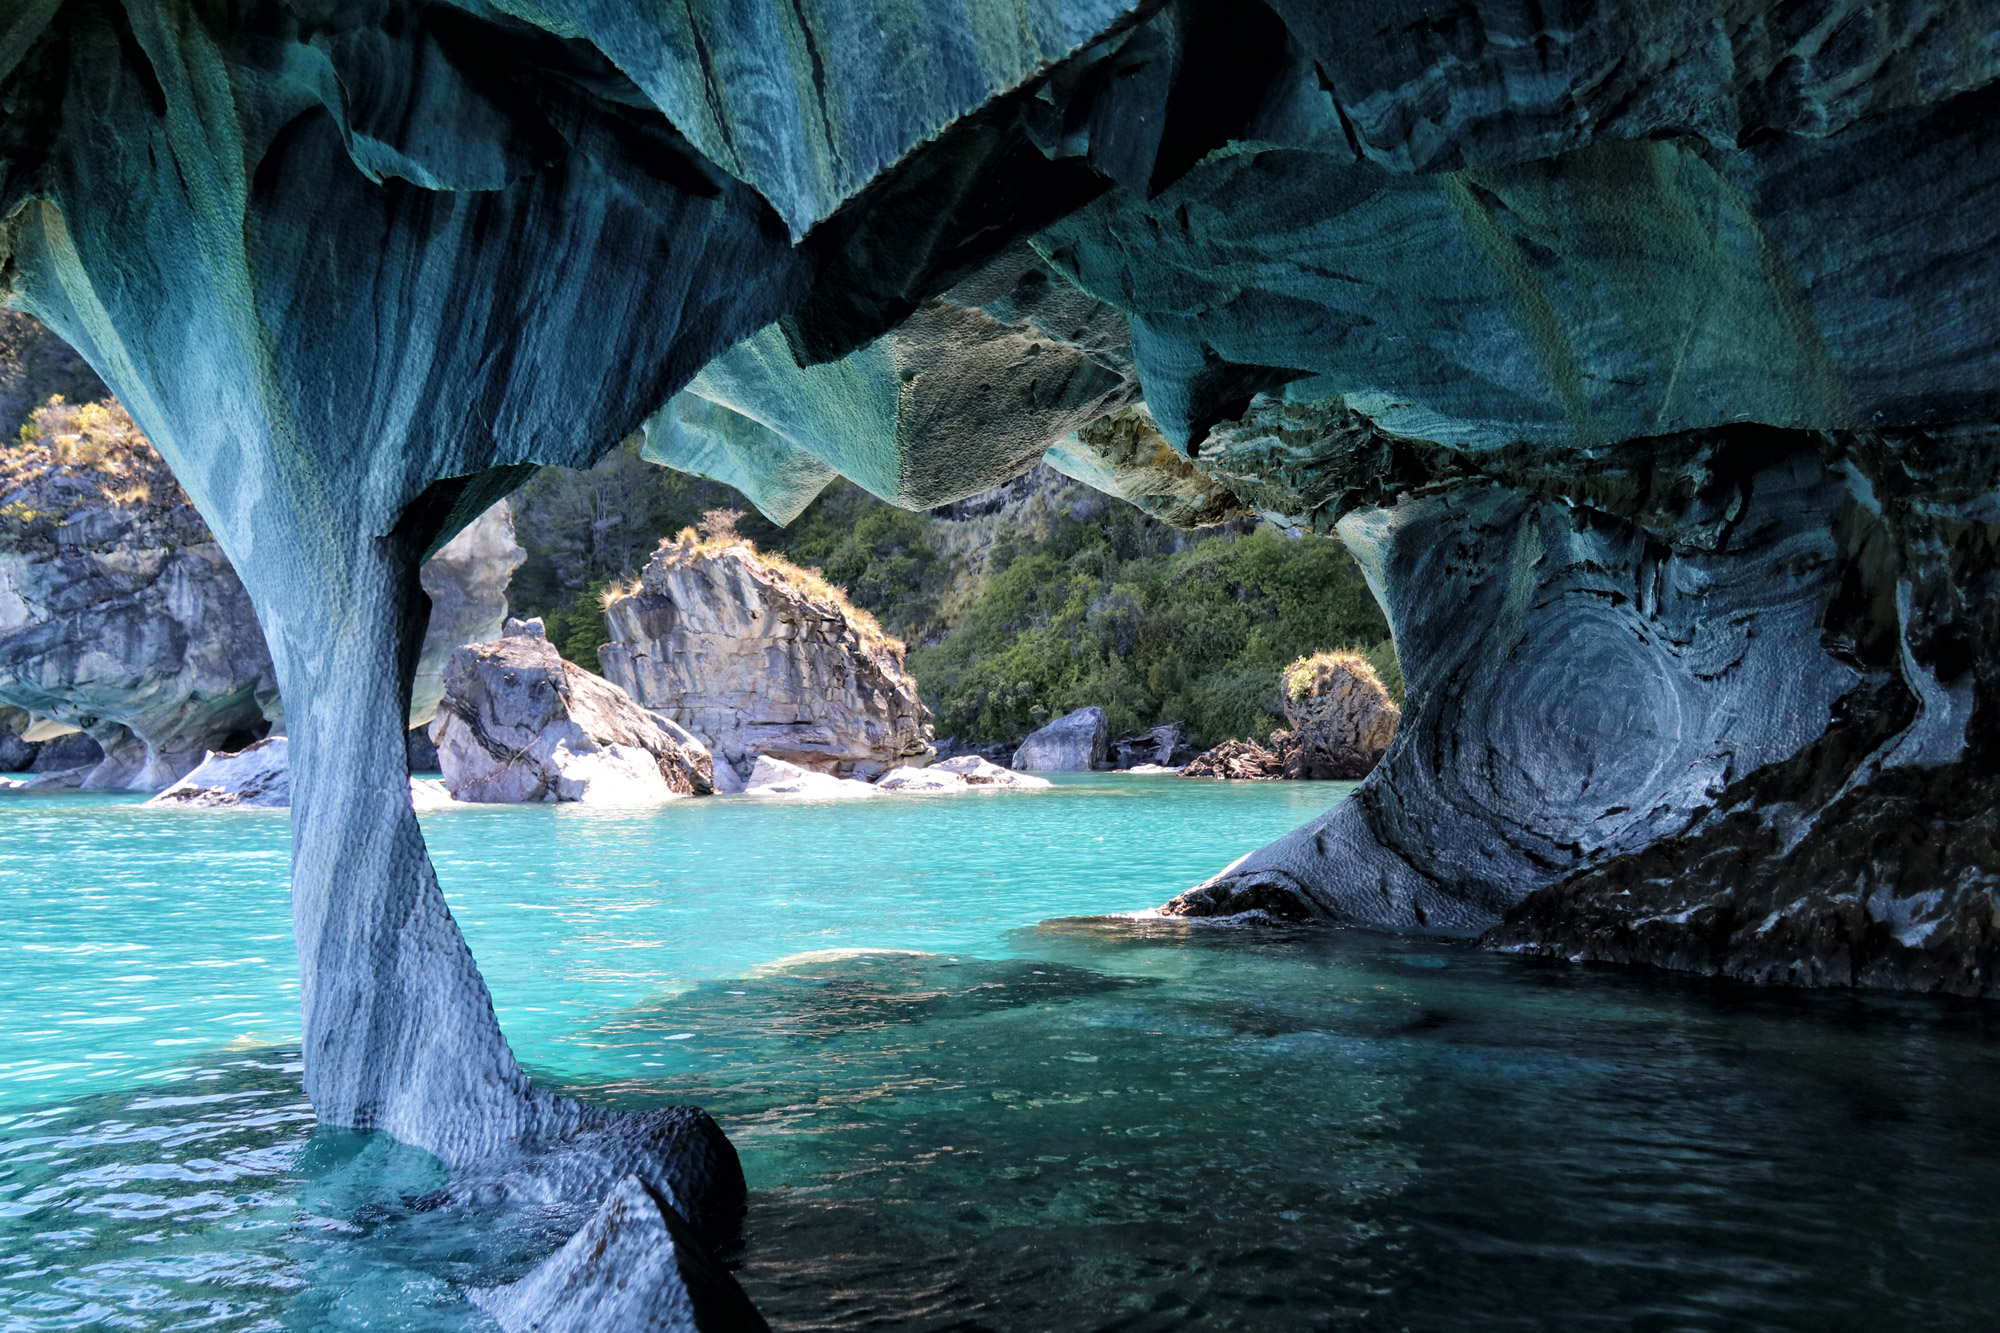 Marble Caves in Patagonië - Chili